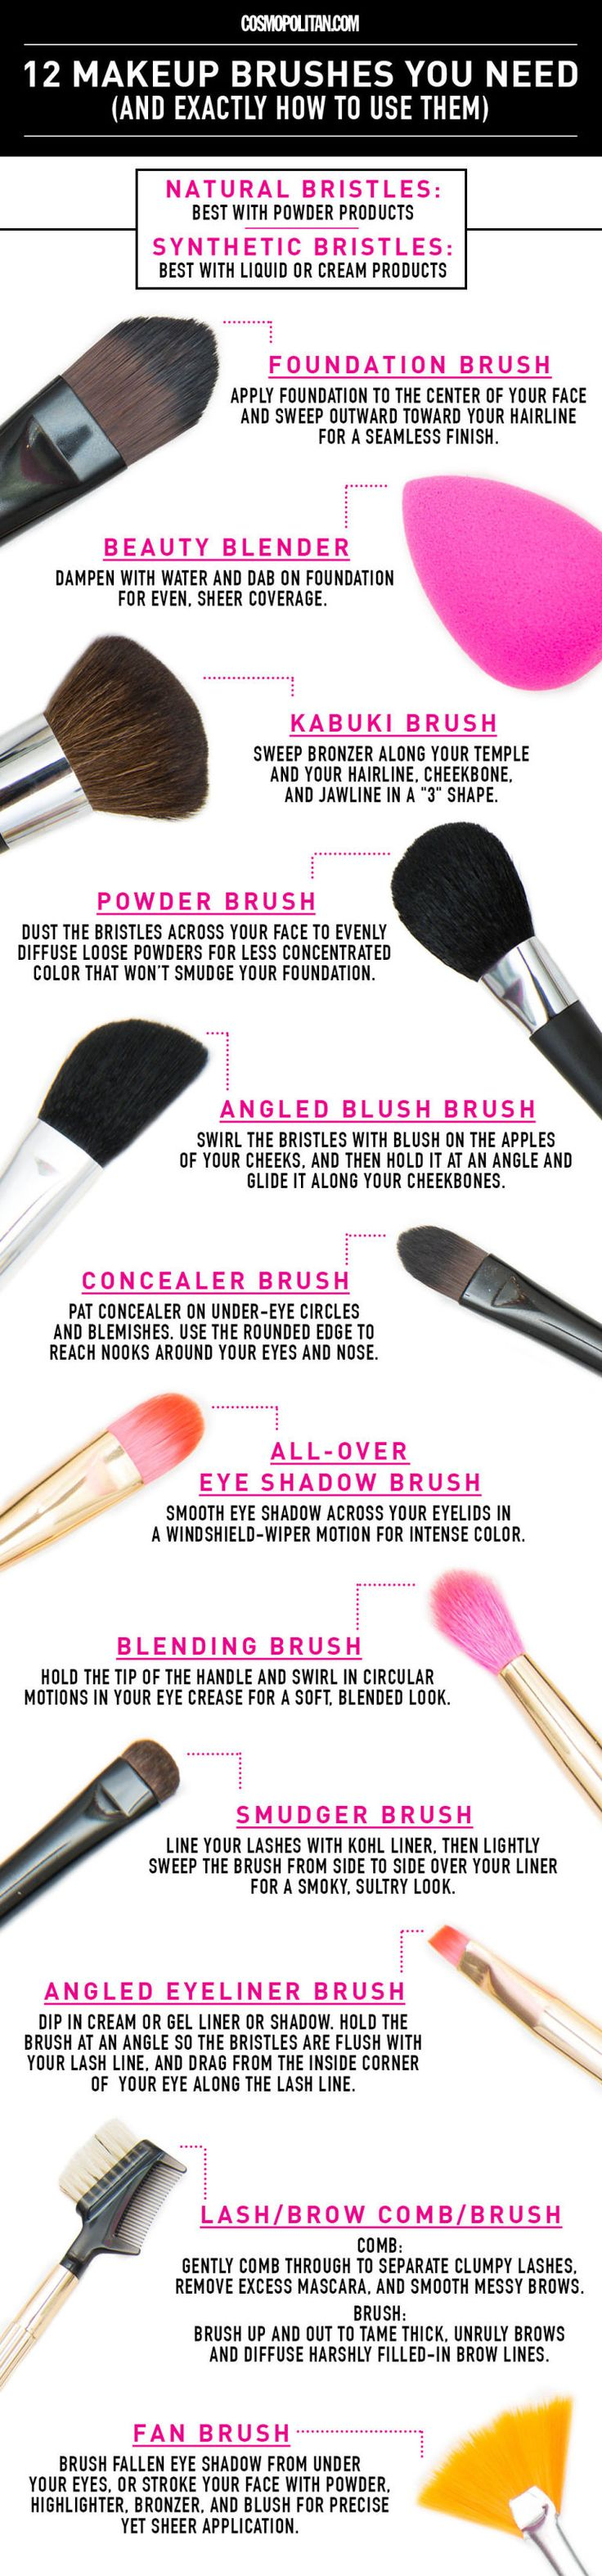 THE BEST MAKEUP BRUSHES  GUIDE: Cosmopolitan.com rounded up the best and most…